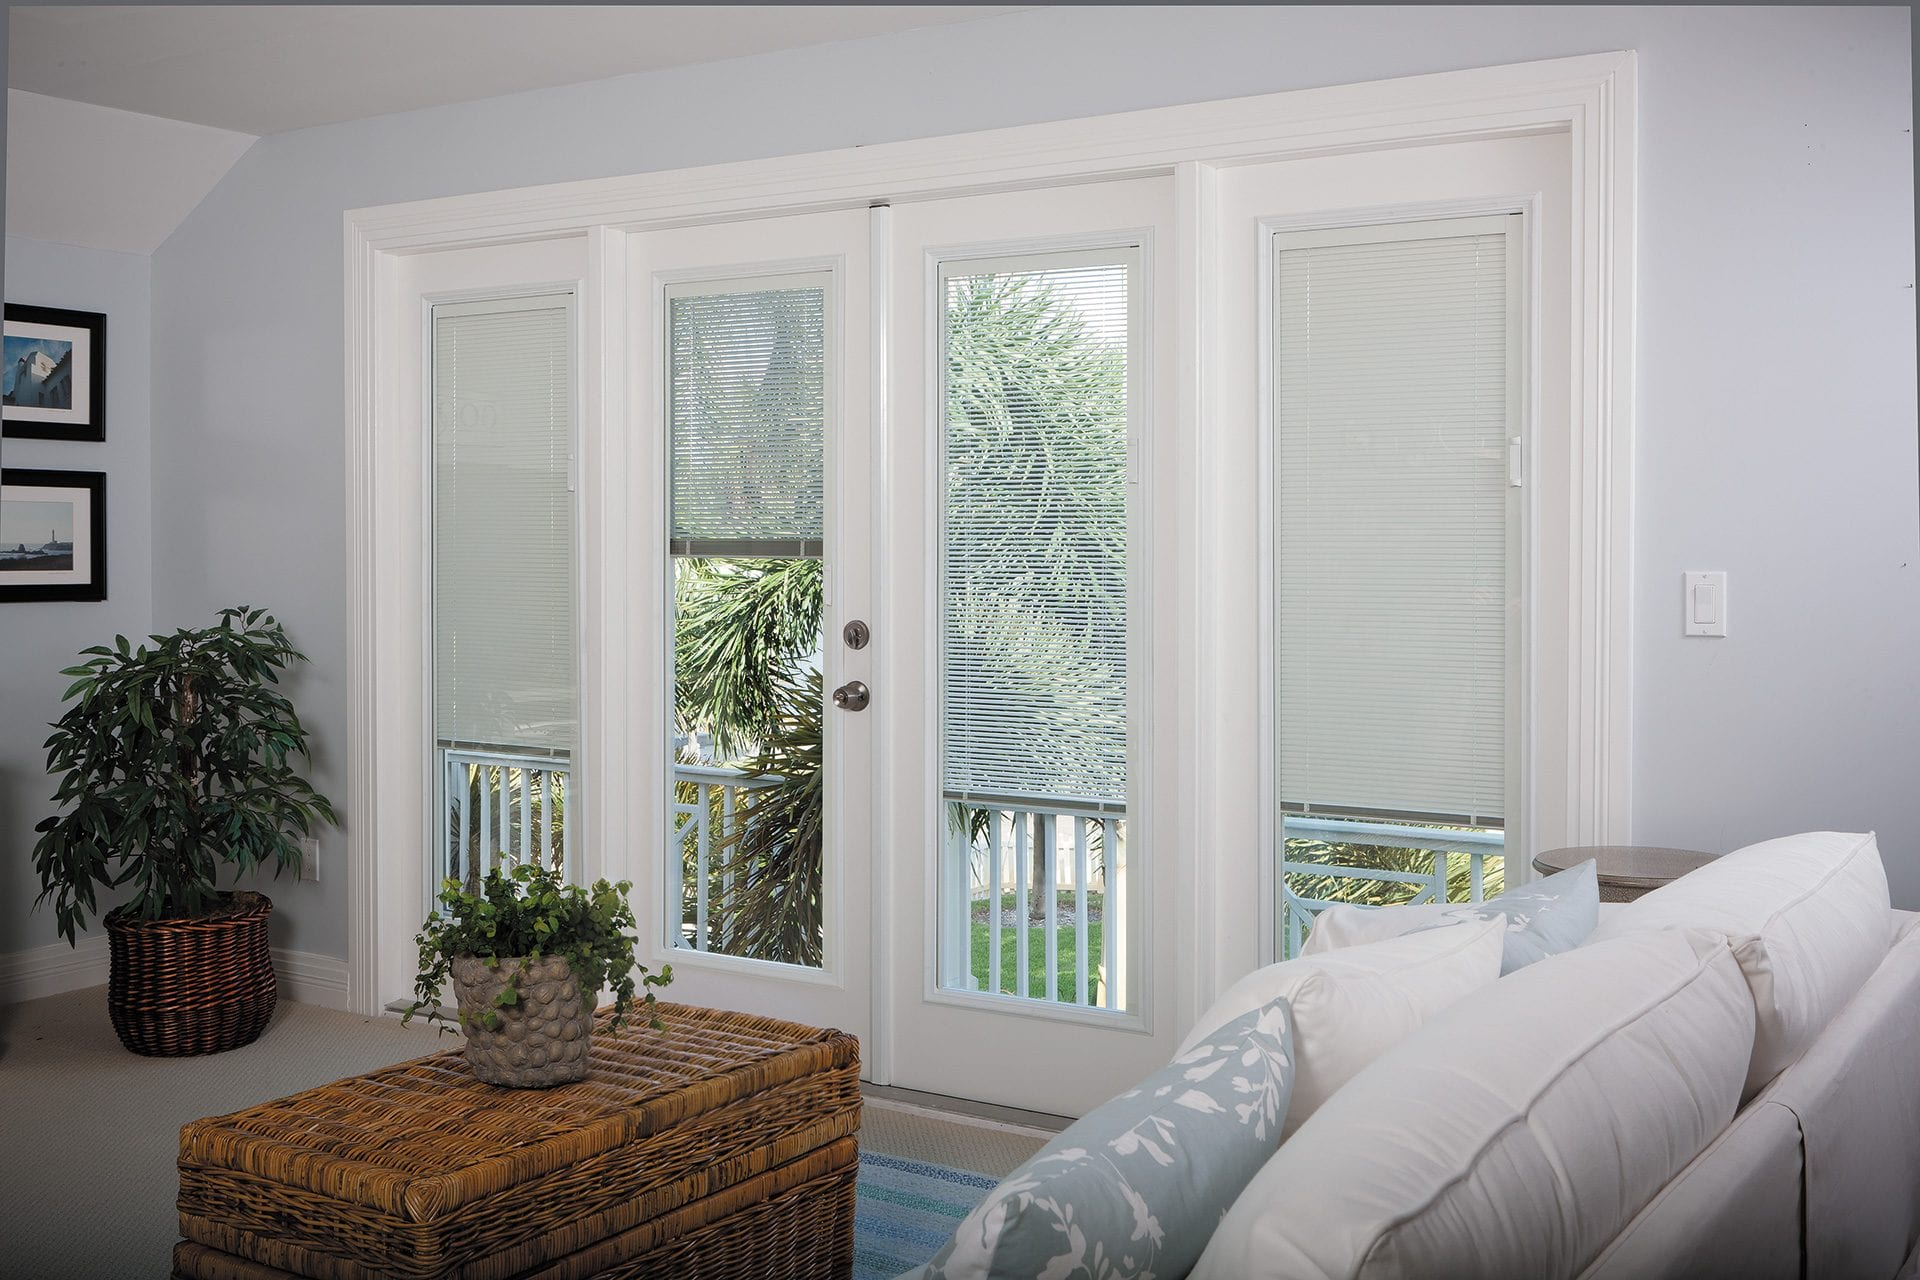 White and bright vinyl patio doors feature design details and decorative options